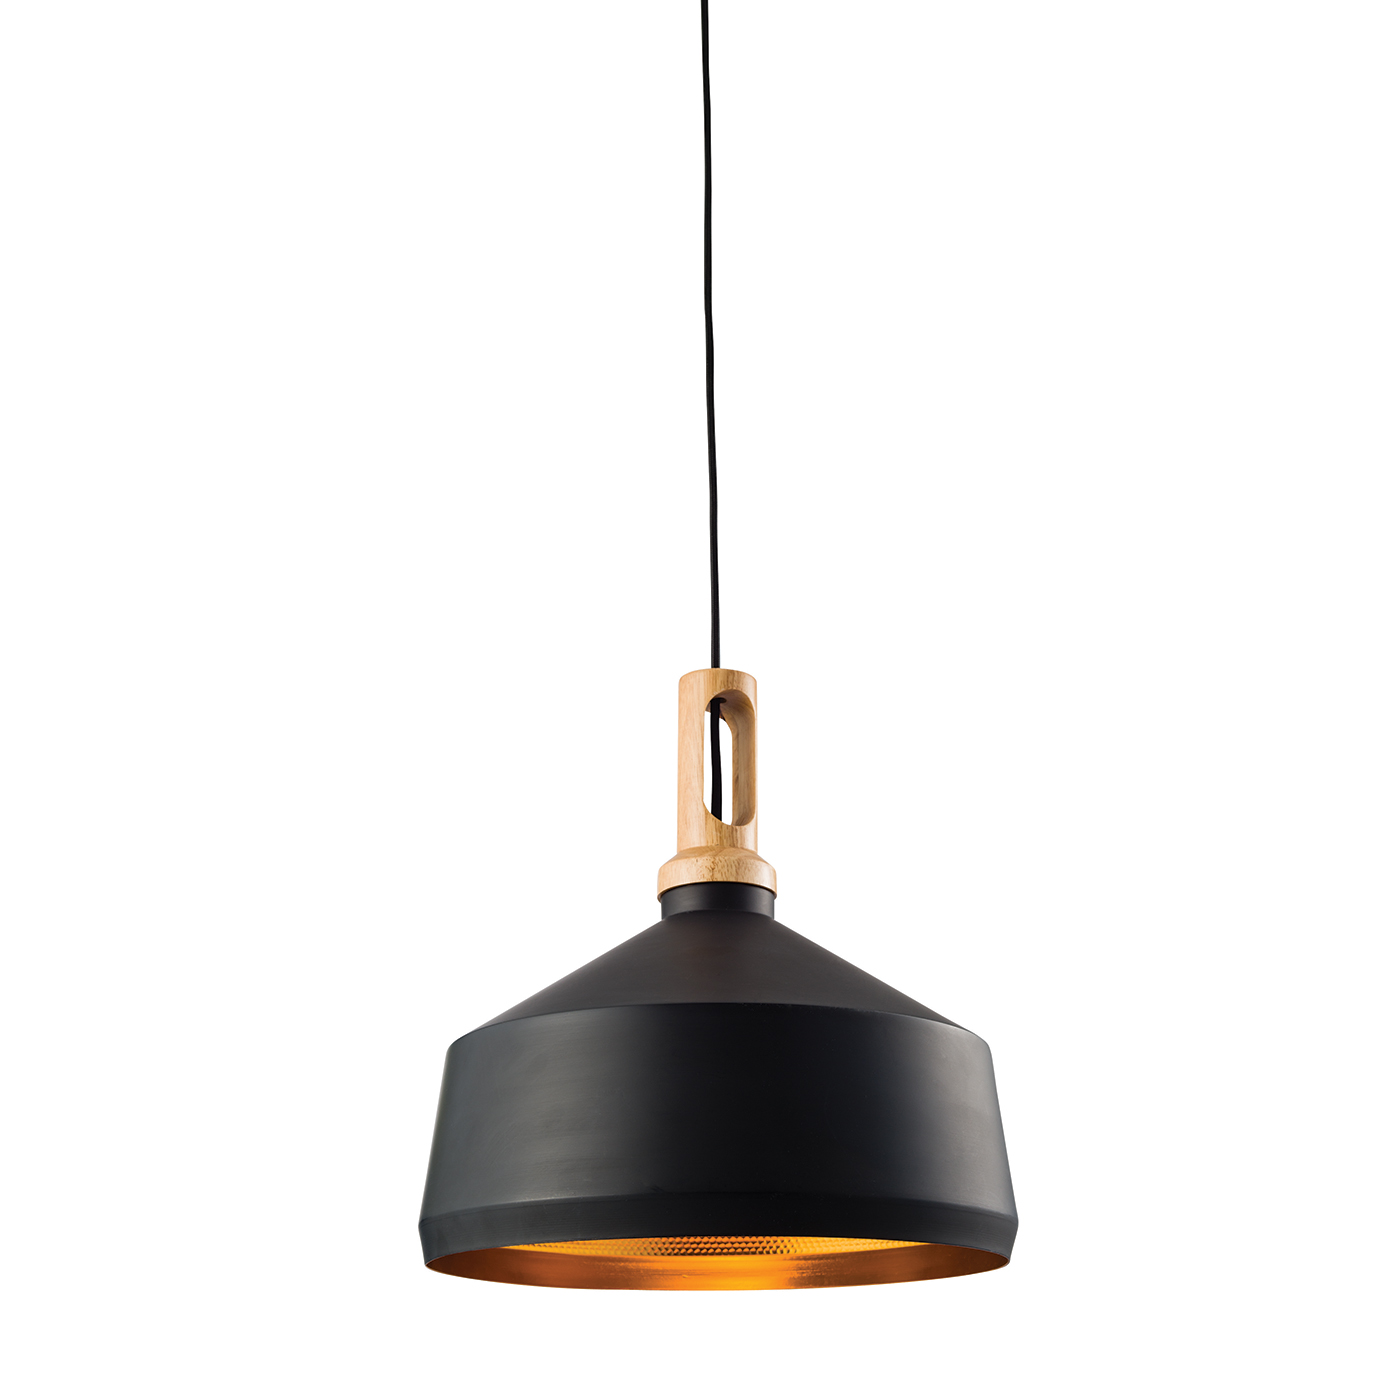 Endon Garcia pendant 1x 60W Matt black & light effect wood Thumbnail 1